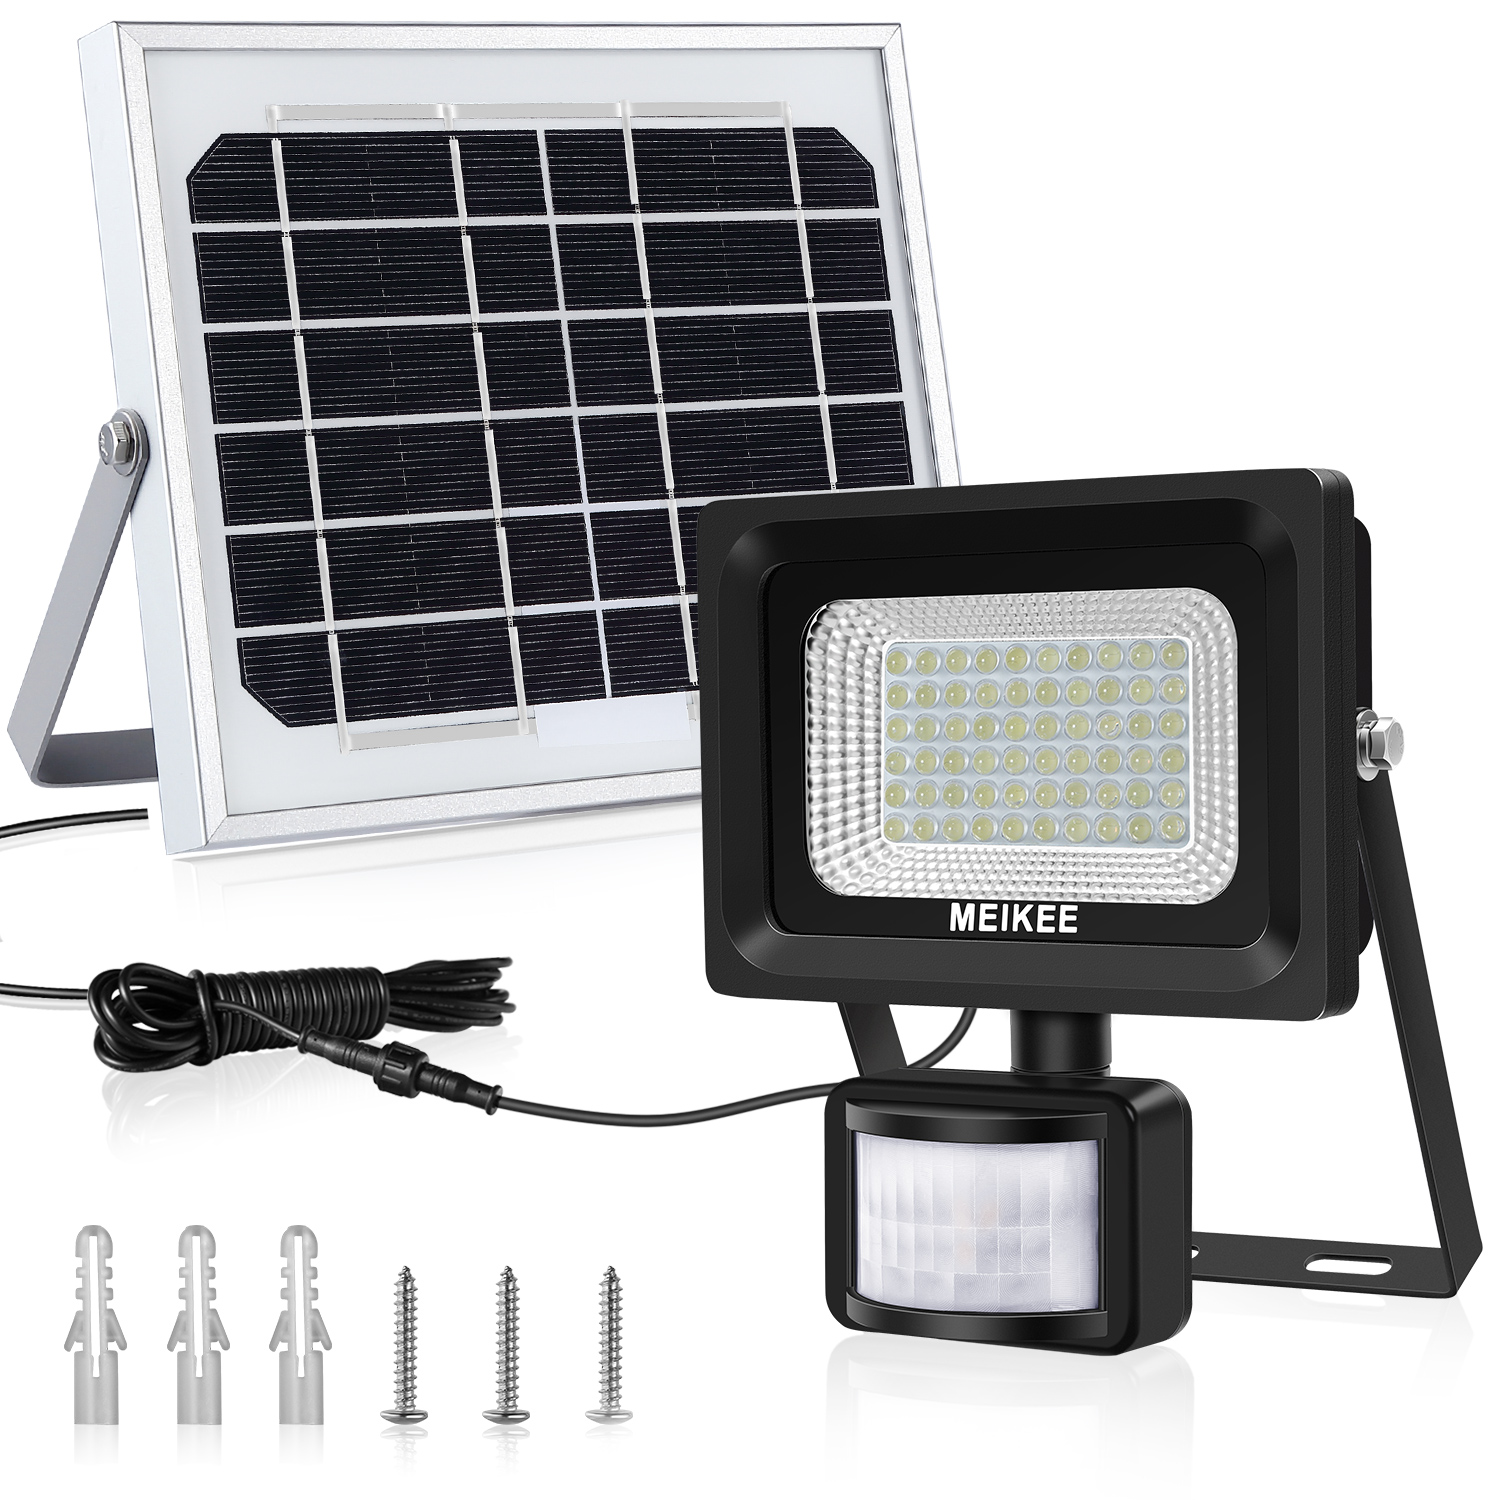 MEIKEE Outdoor 60 LEDs Solar Security Light, Professional IP66 waterproof design for using at outdoor